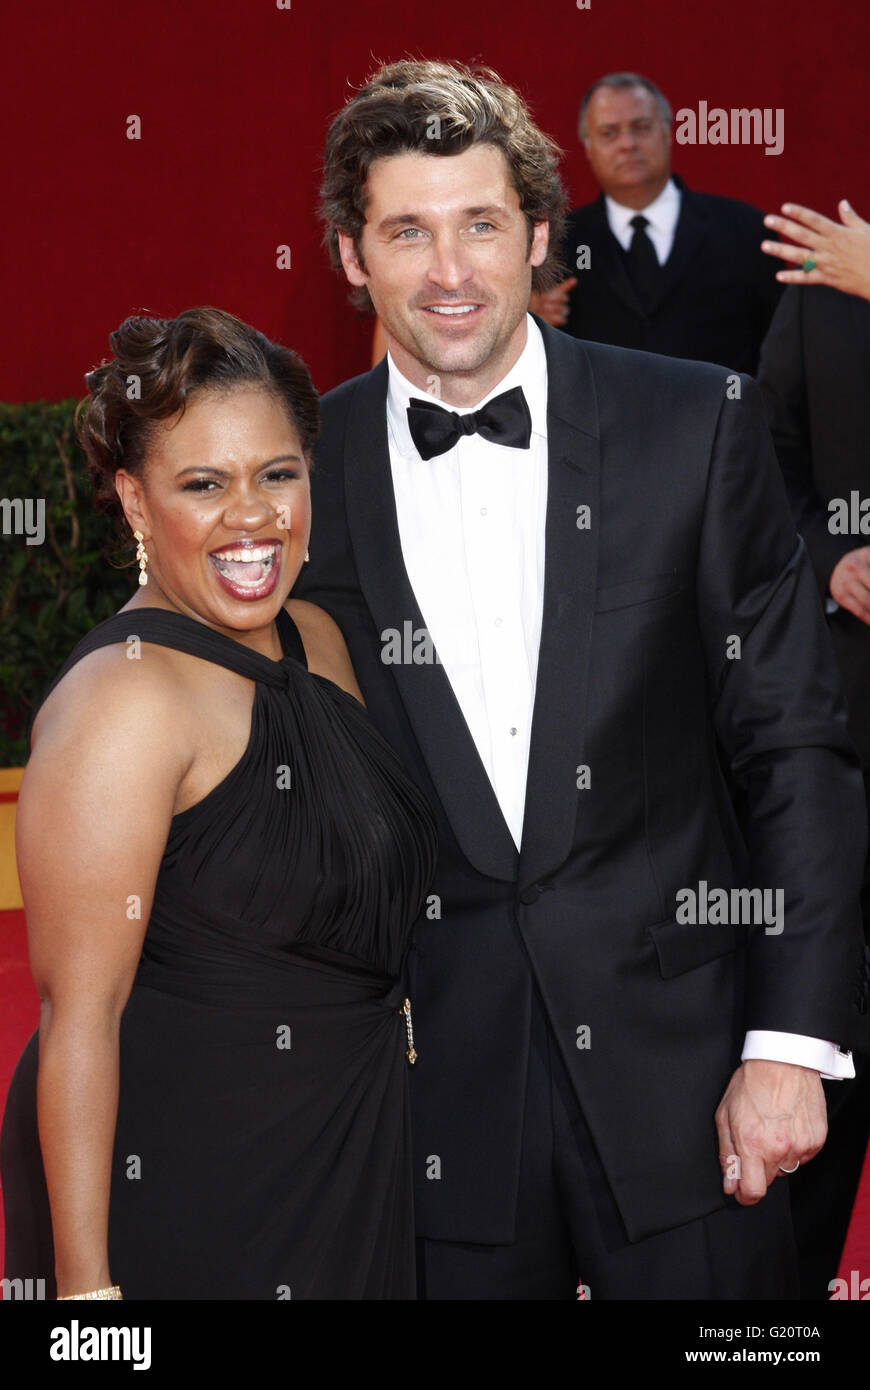 LOS ANGELES, CALIFORNIA - Sunday September 21, 2008. Patrick Dempsey and Chandra Wilson at the 60th Primetime EMMY - Stock Image